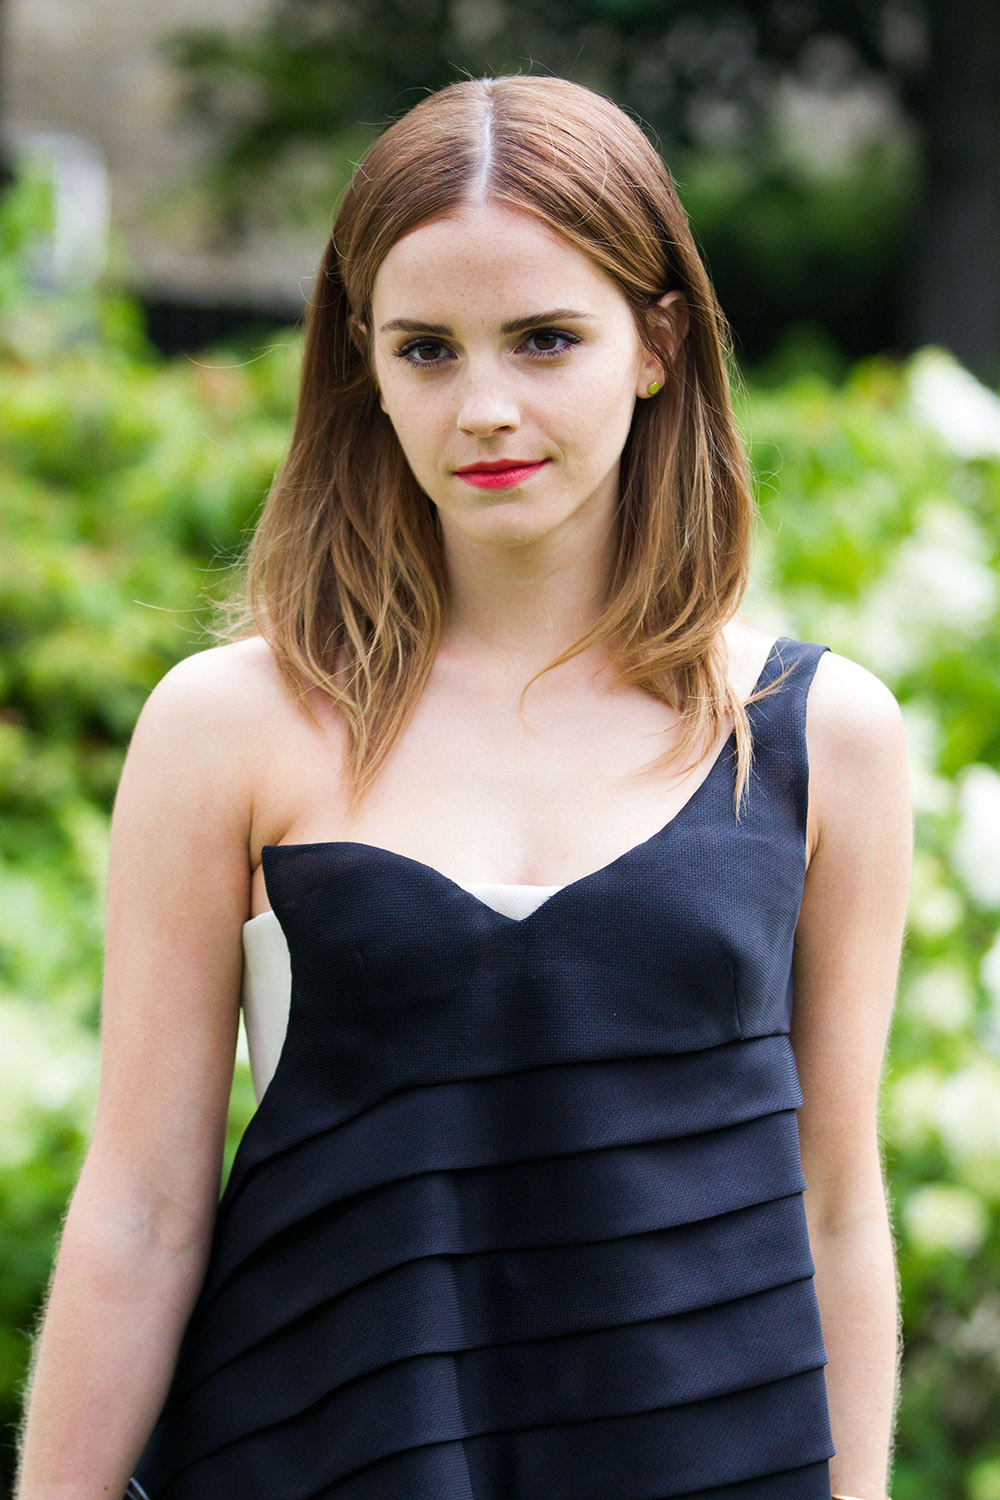 emma watson haircut 2017 - photo #41